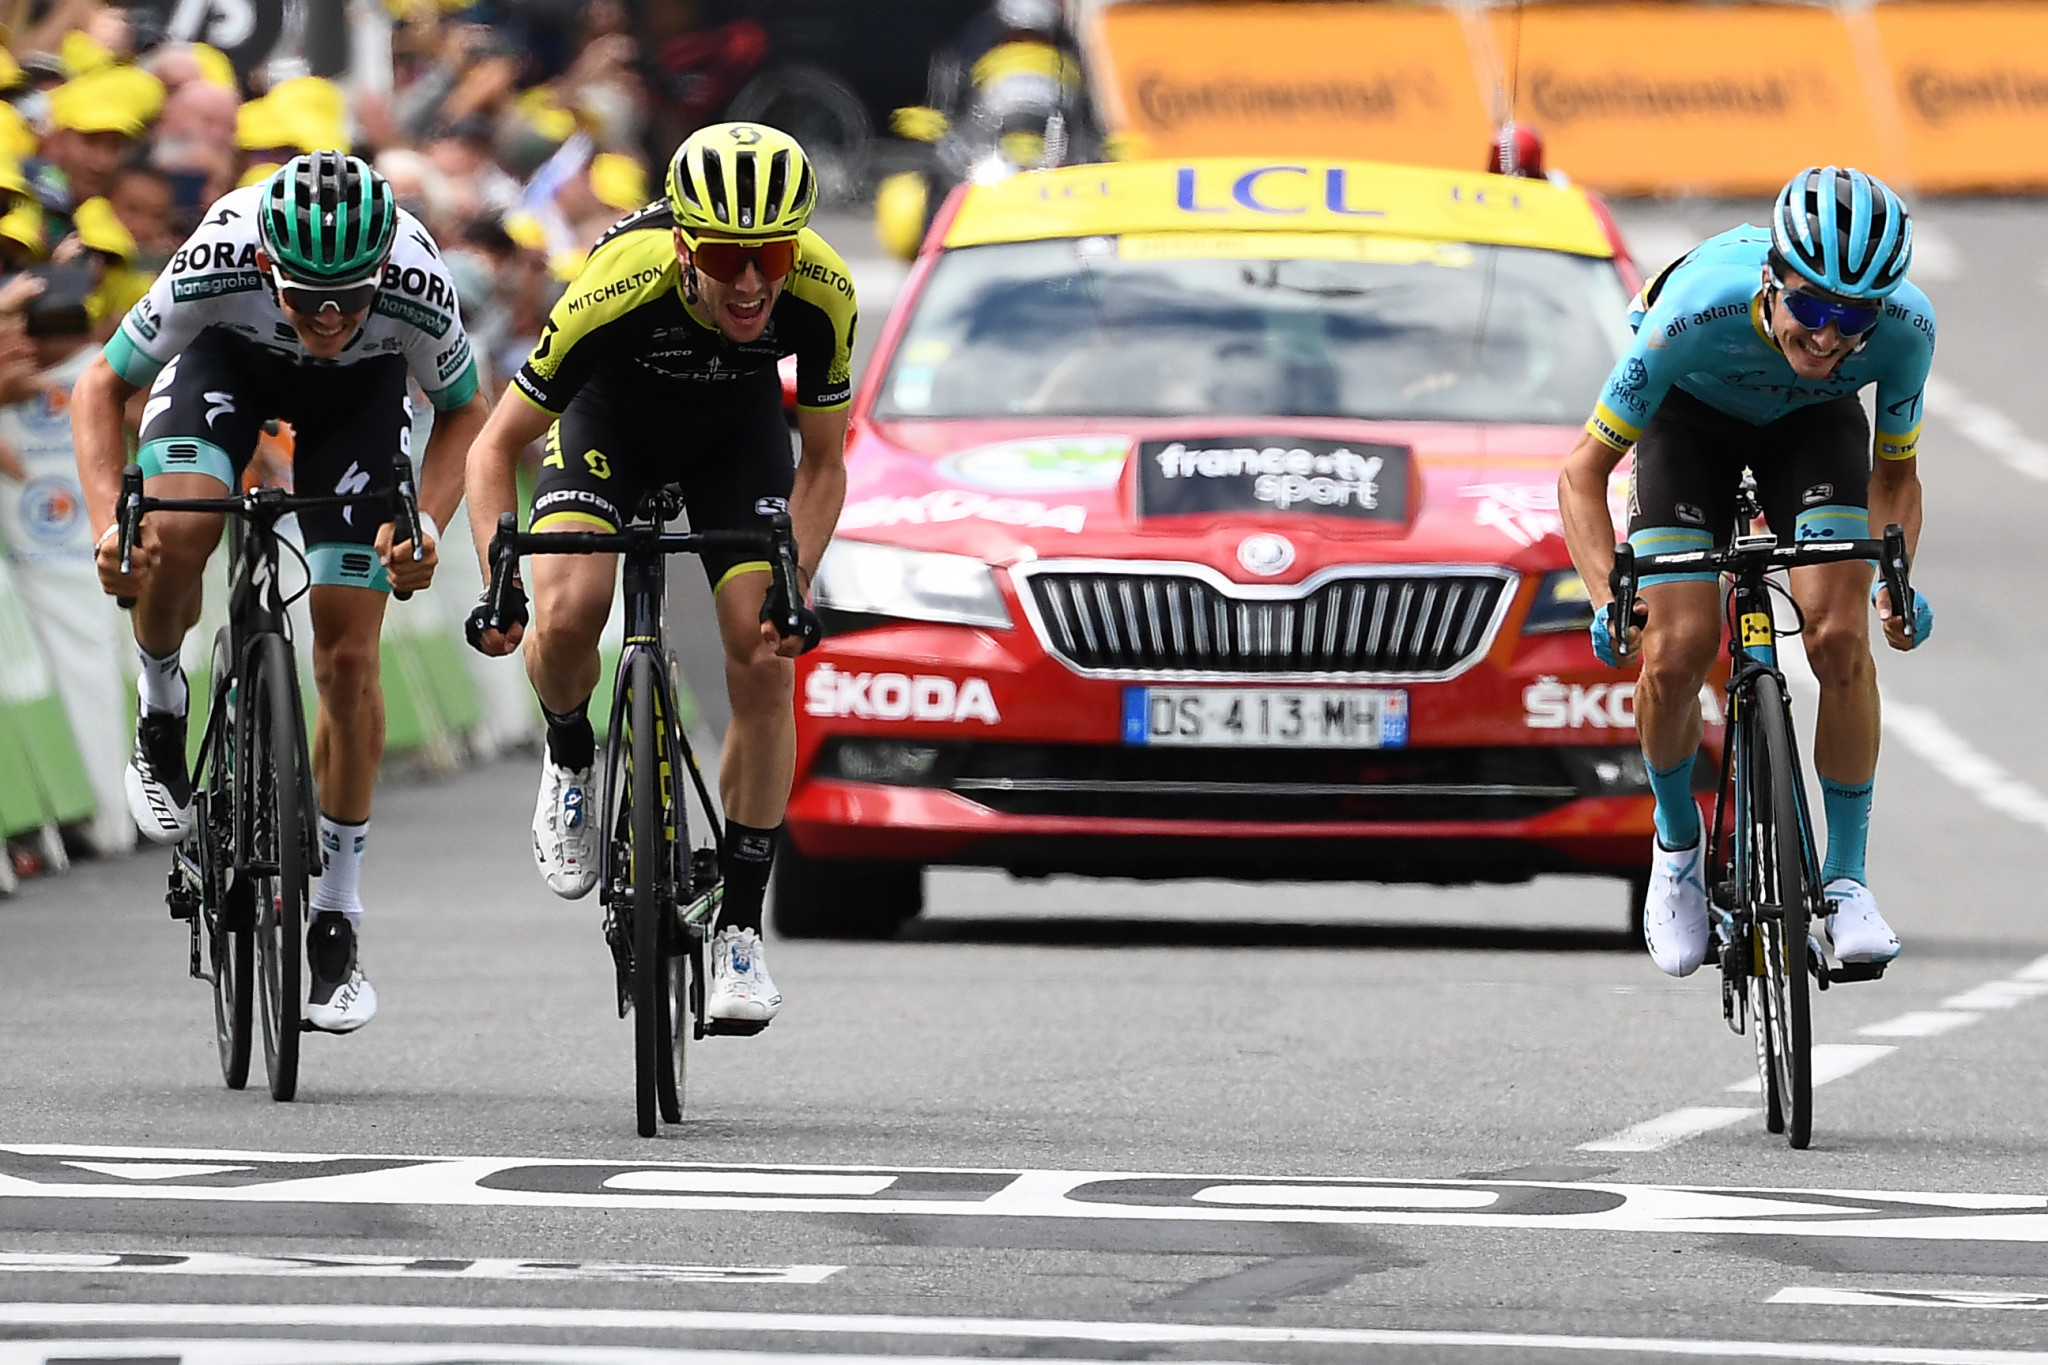 Simon Yates triumphed after he was among three riders who broke away around 30km from the finish ©Getty Images